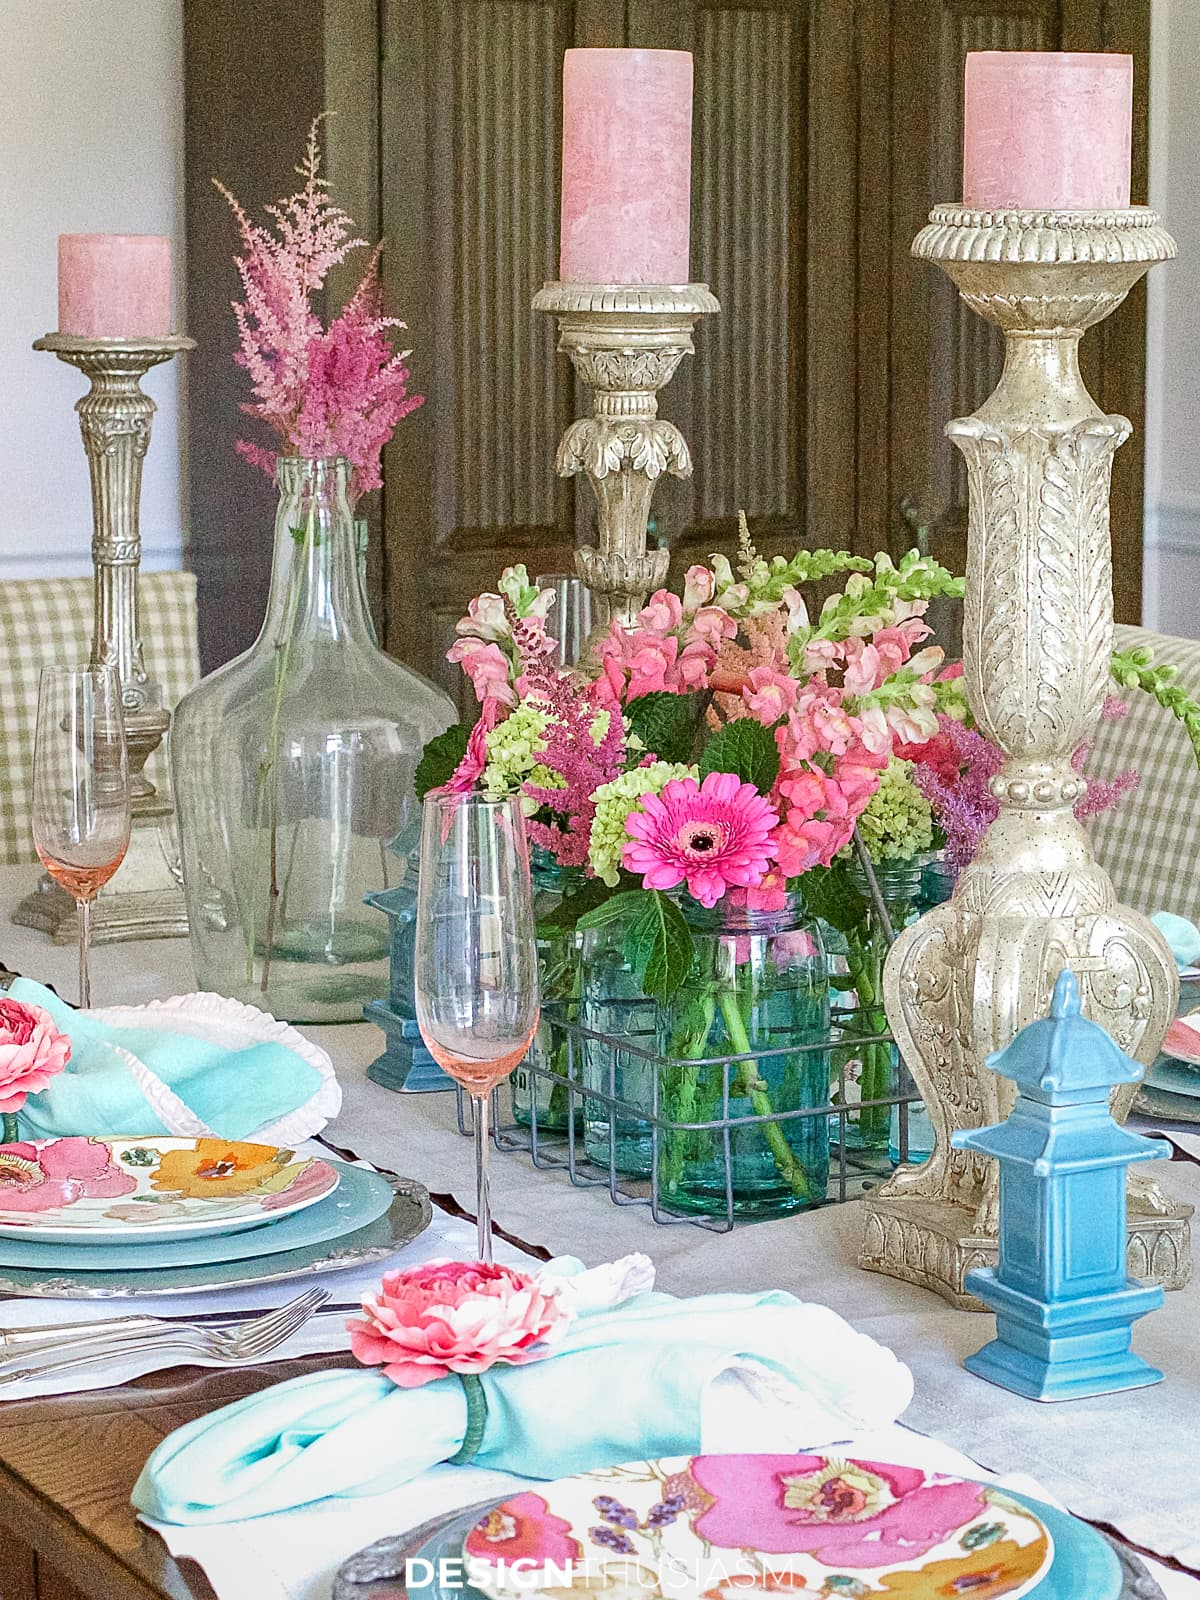 summer table setting with flowers